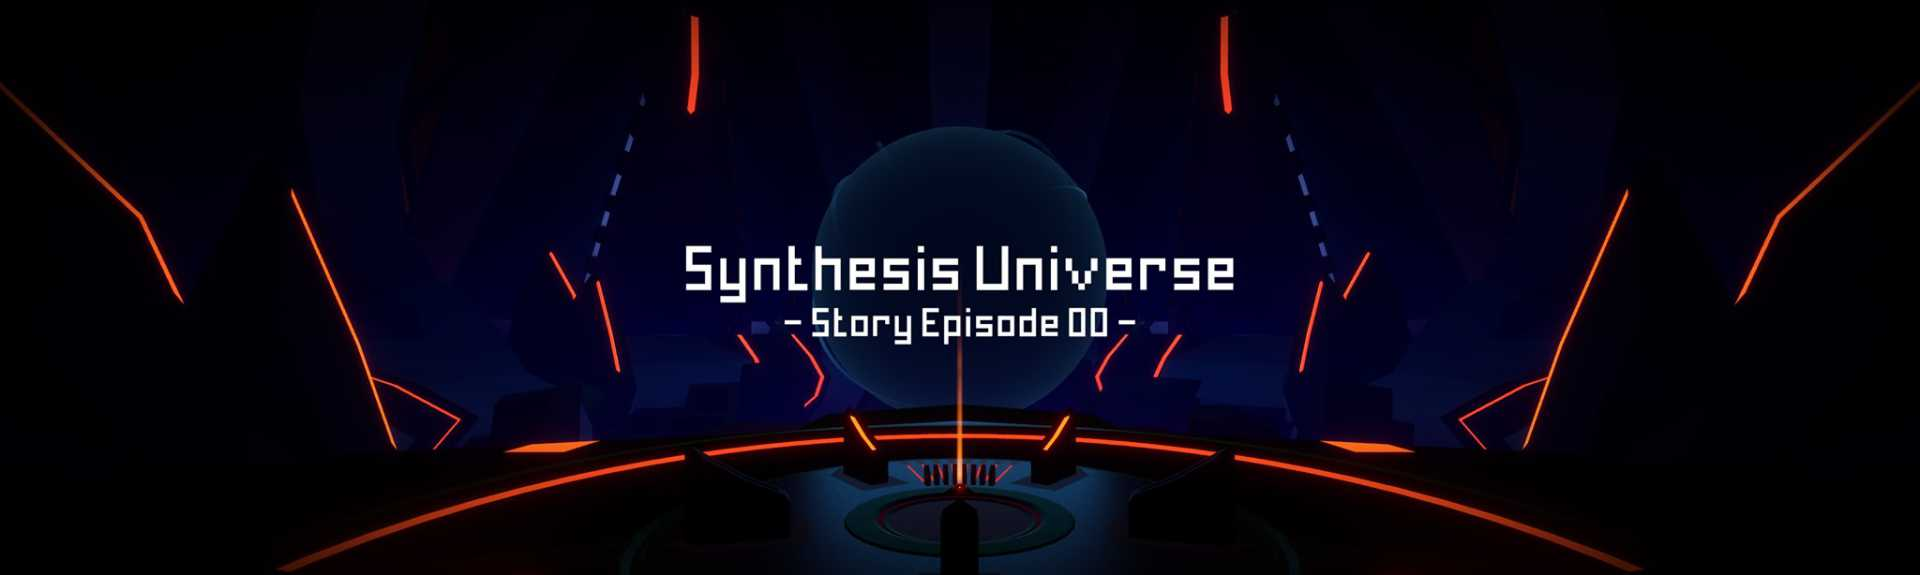 Synthesis Universe - Story Episode 00 -